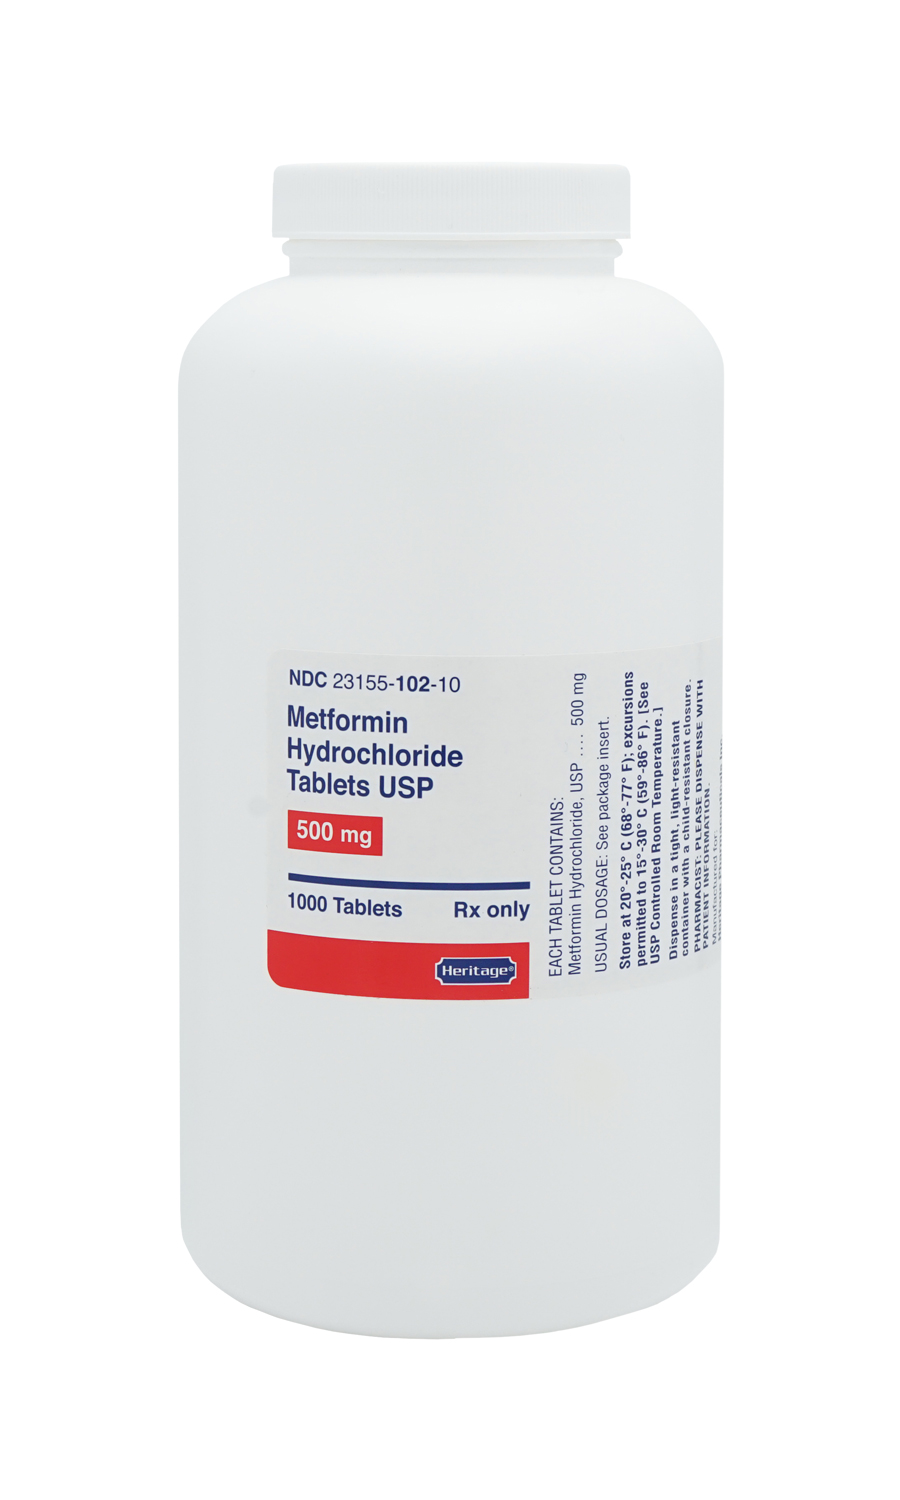 what is the generic name for metformin